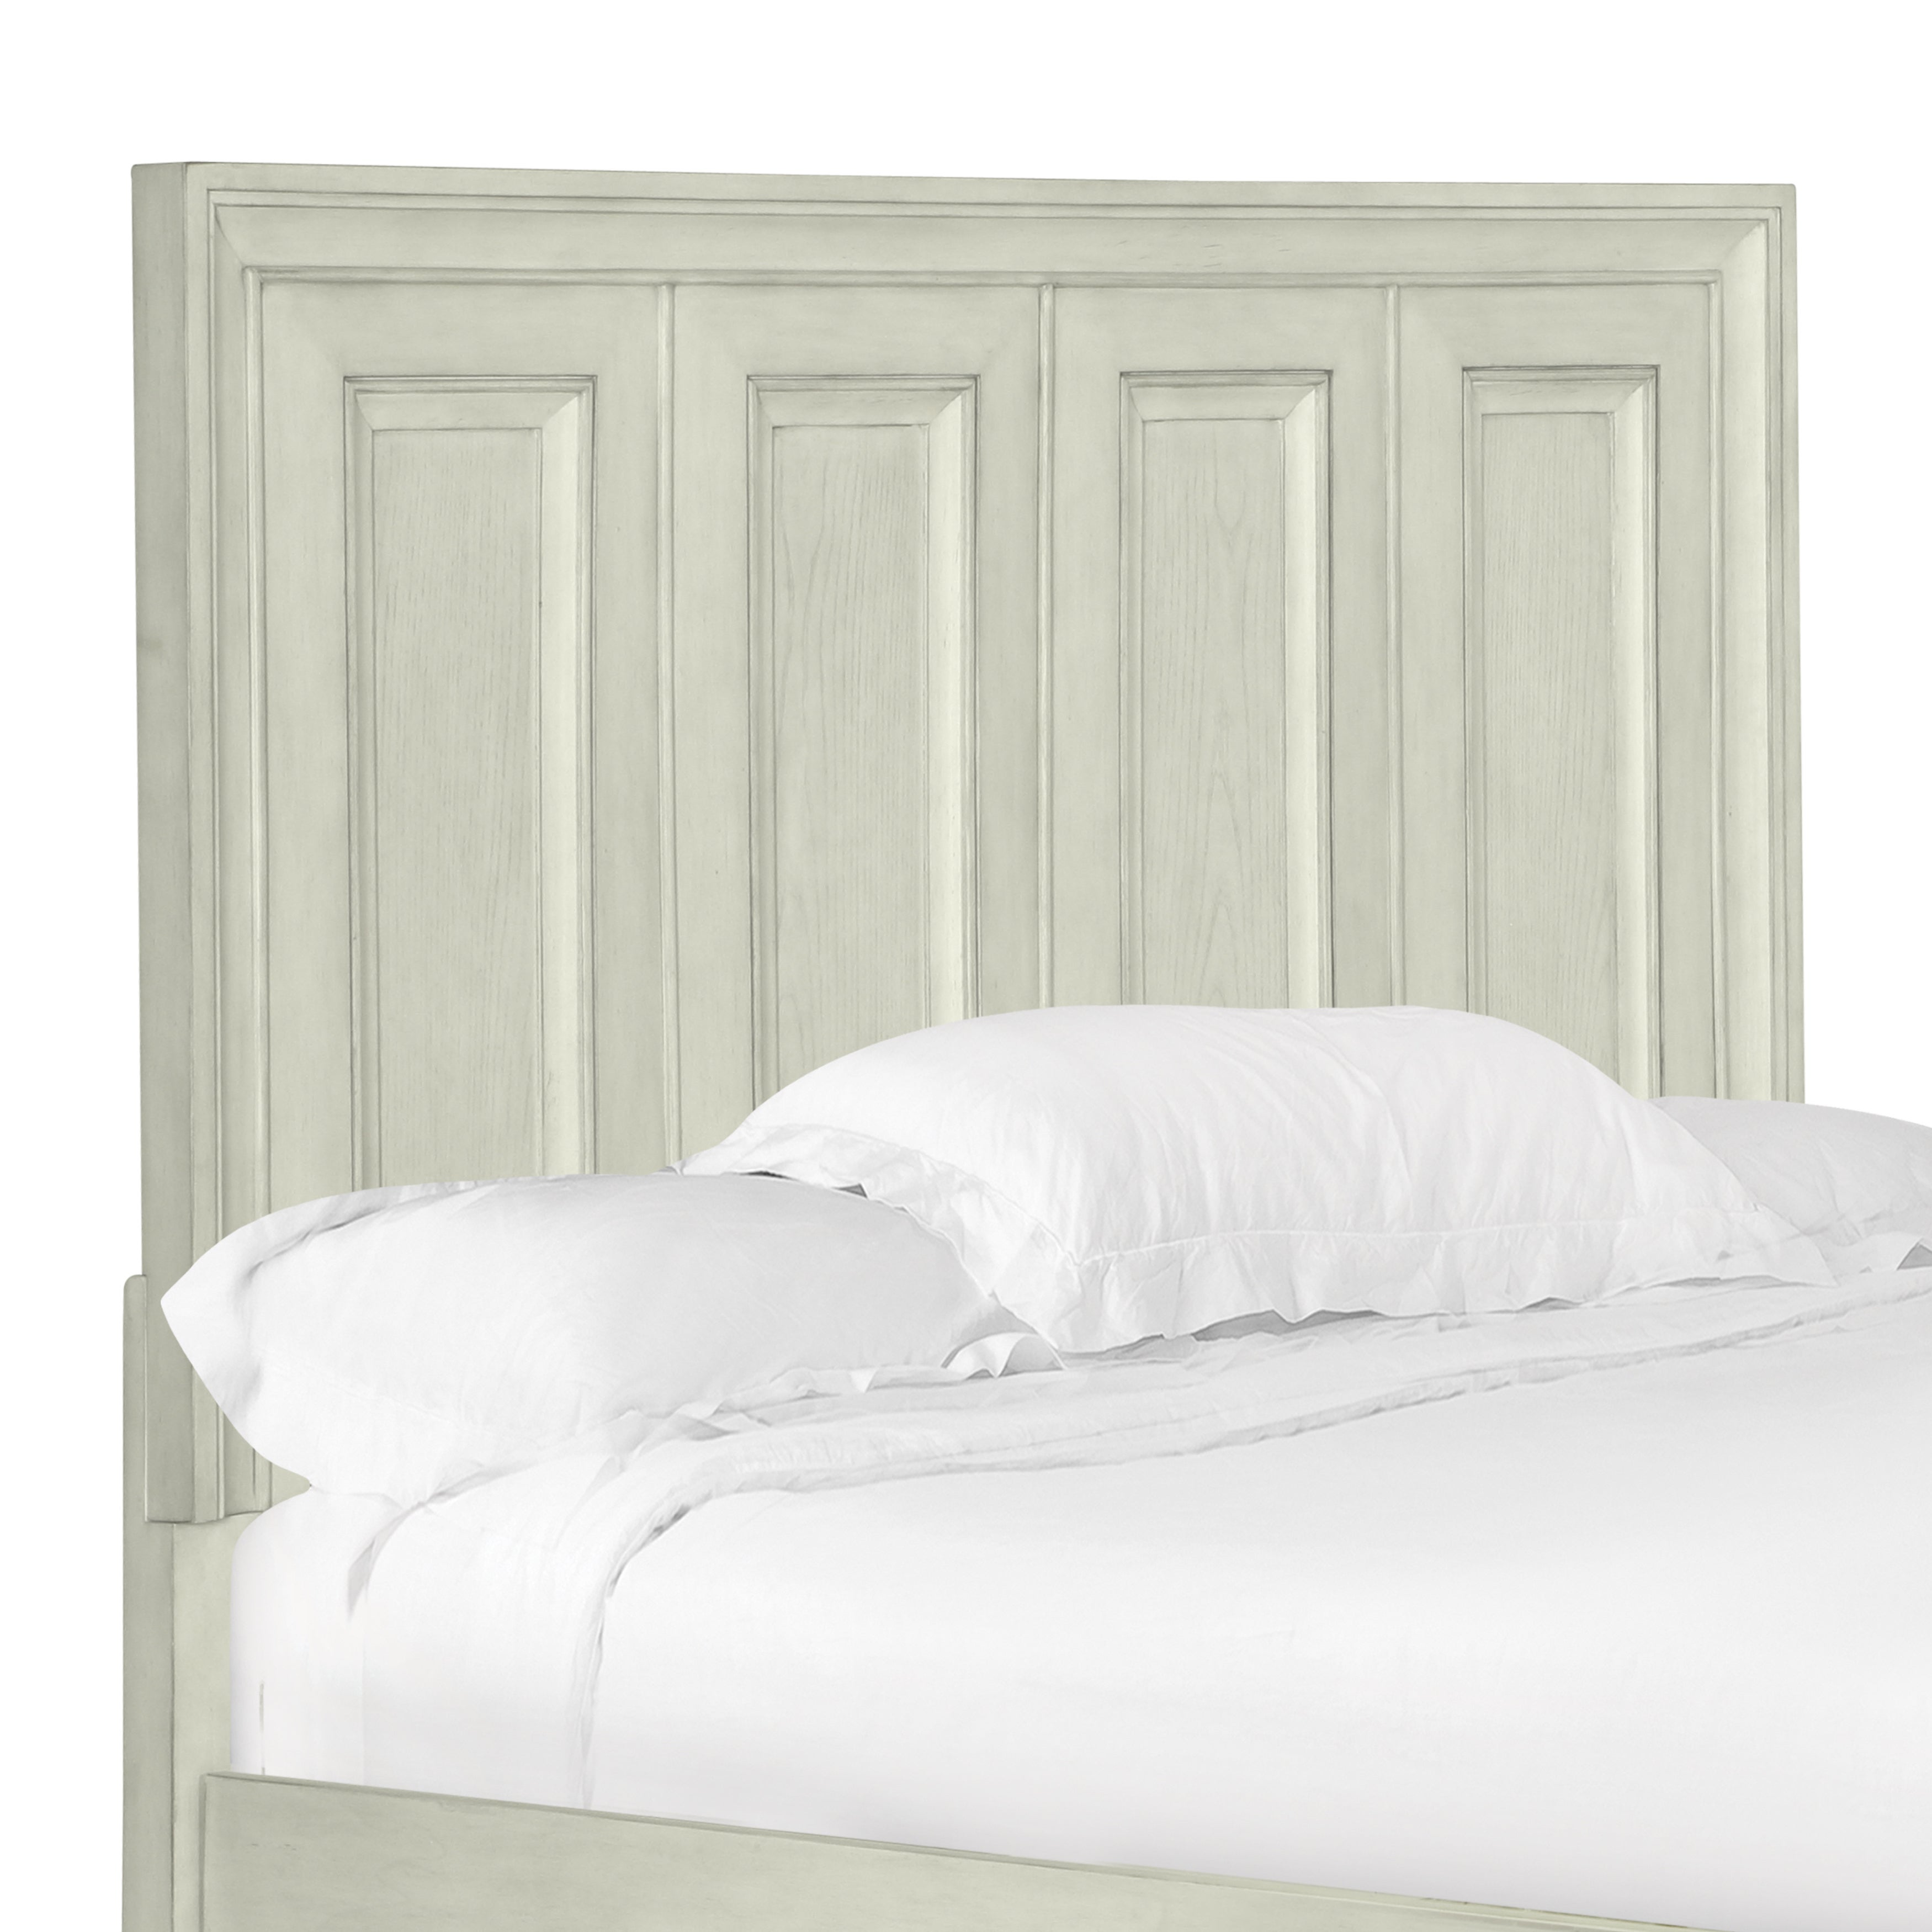 Raelynn Panel Bed Queen Headboard in Weathered White (Queen Panel Bed Headboard - Weathered White)